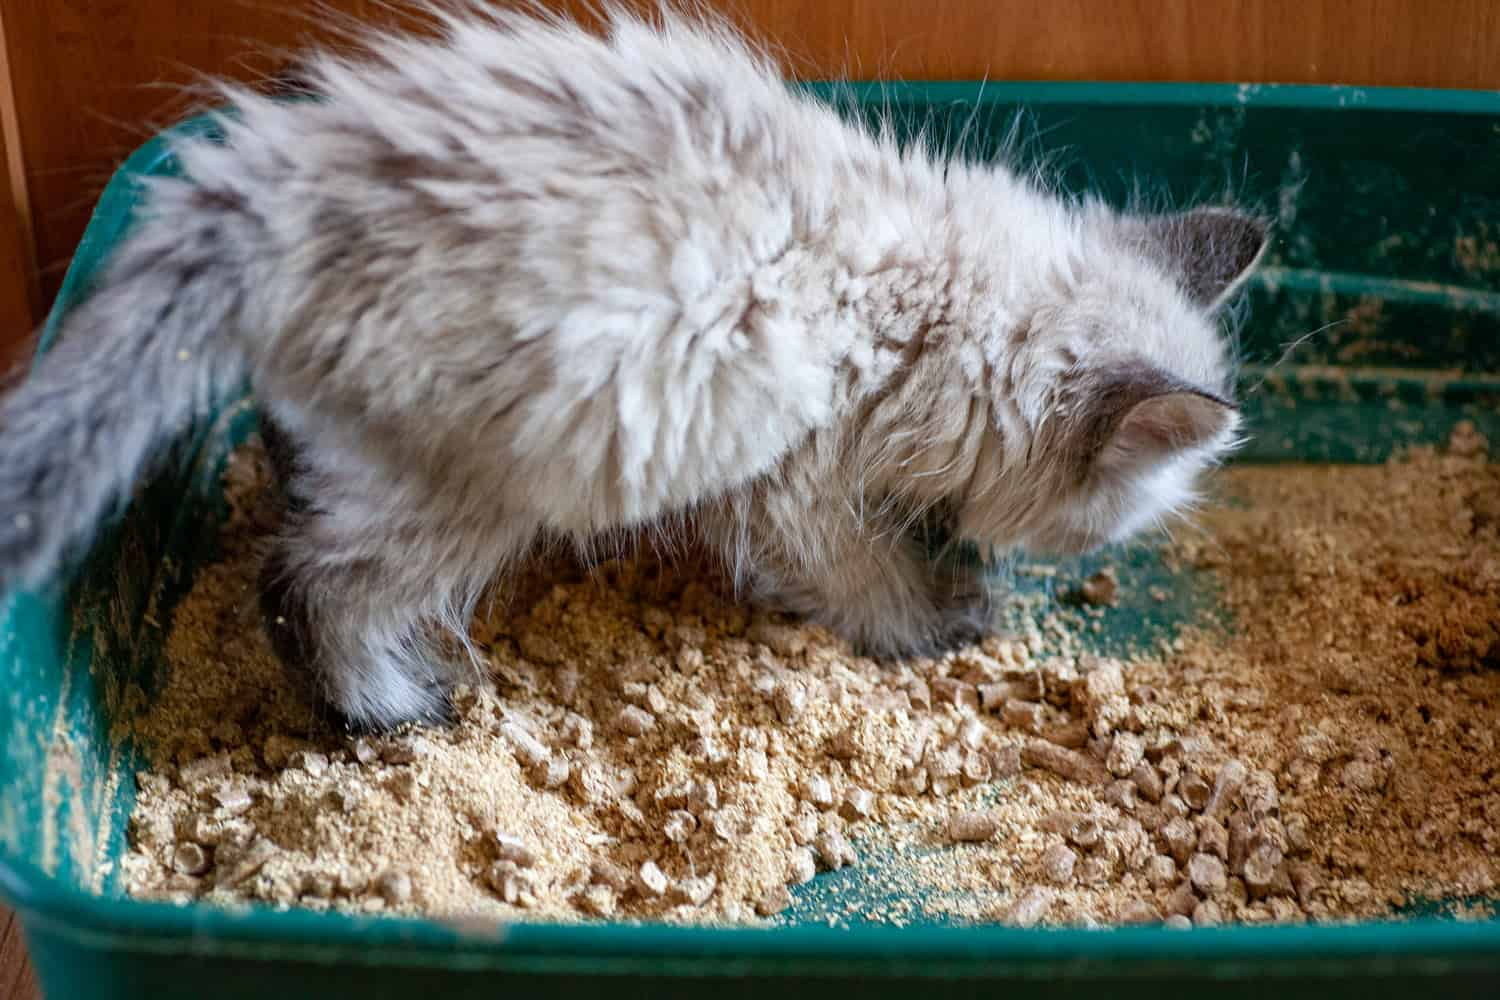 An overweight constipated cat sitting on the litter box trying to poop